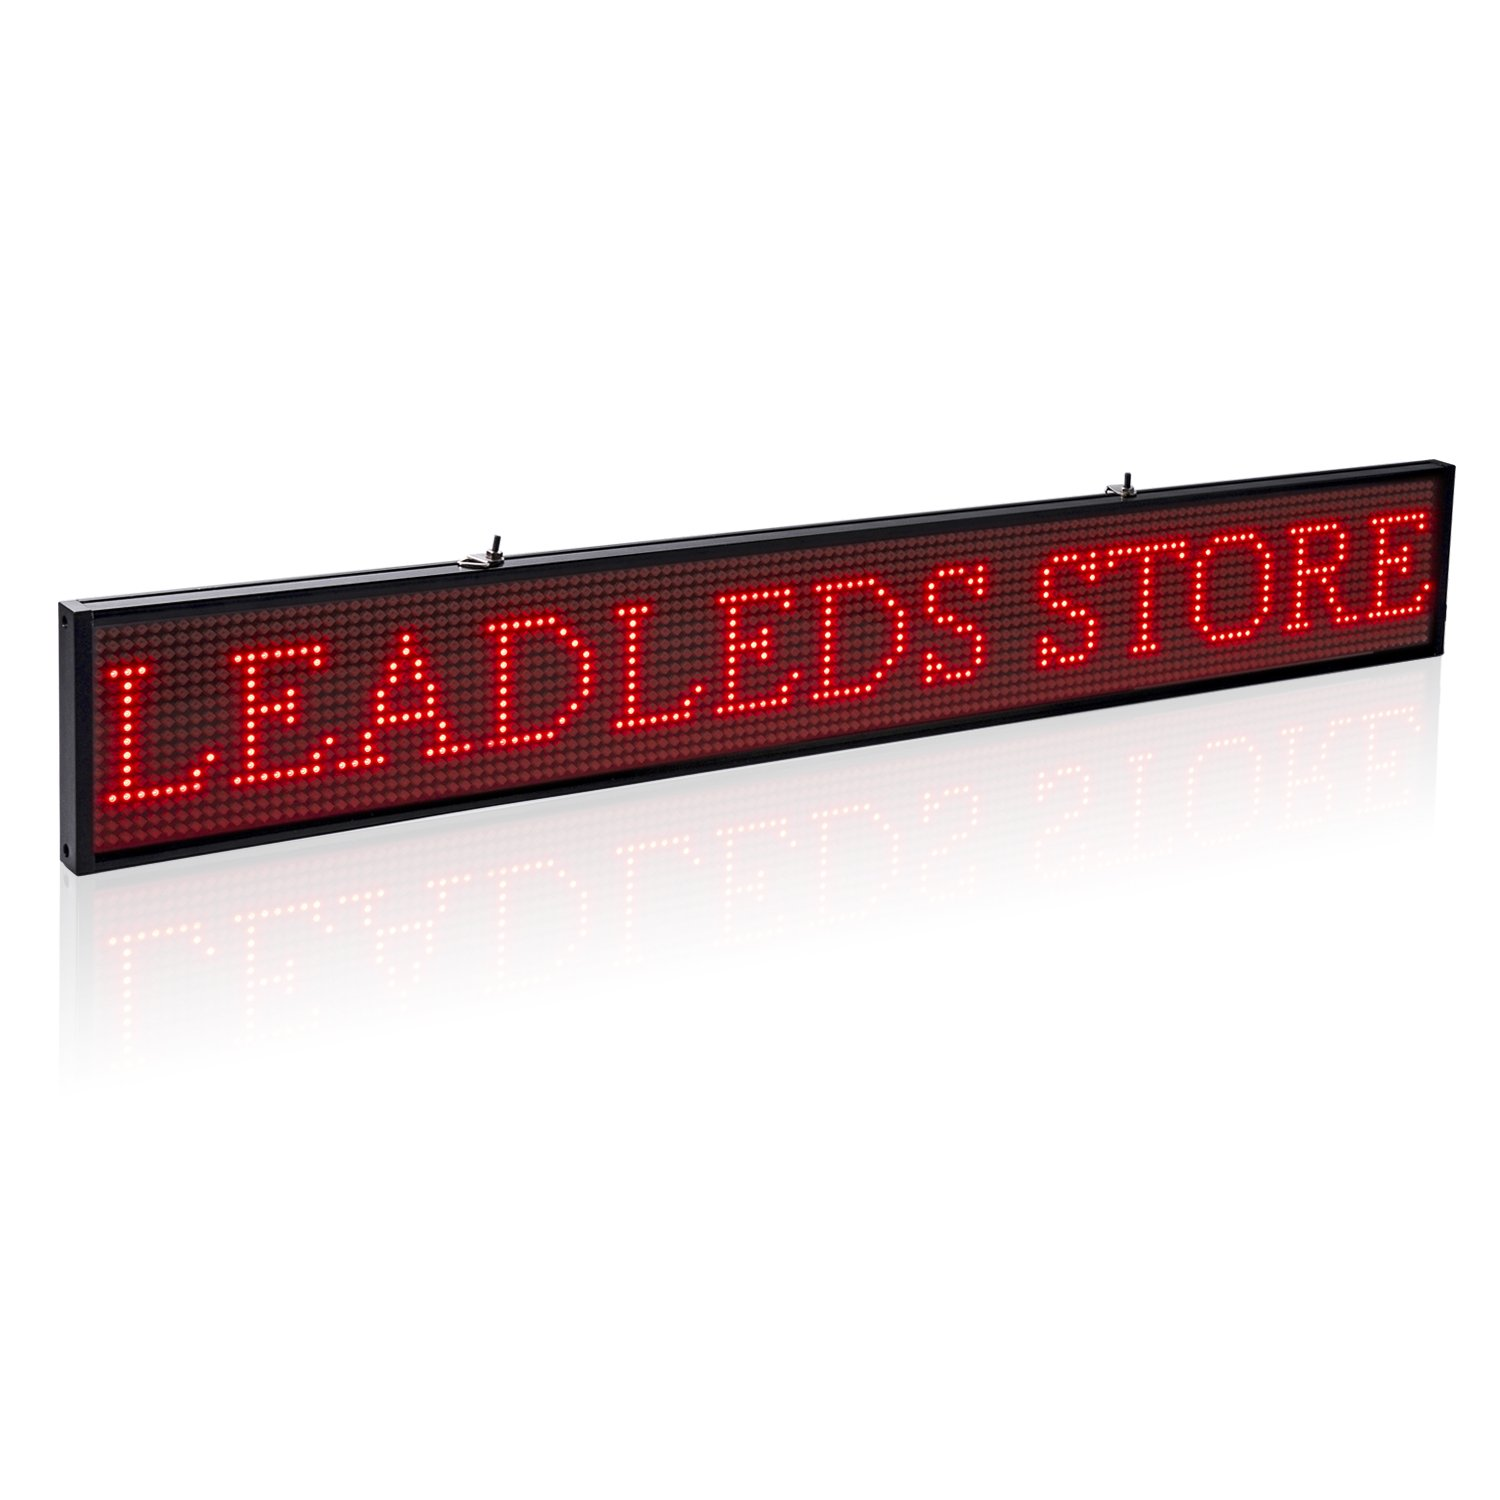 Leadleds Ultra-Thin Design P5mm 16X96 Pixel SMD LED programmierbare Scrolling Nachricht Sign Board, PC Software Change messages (rot)